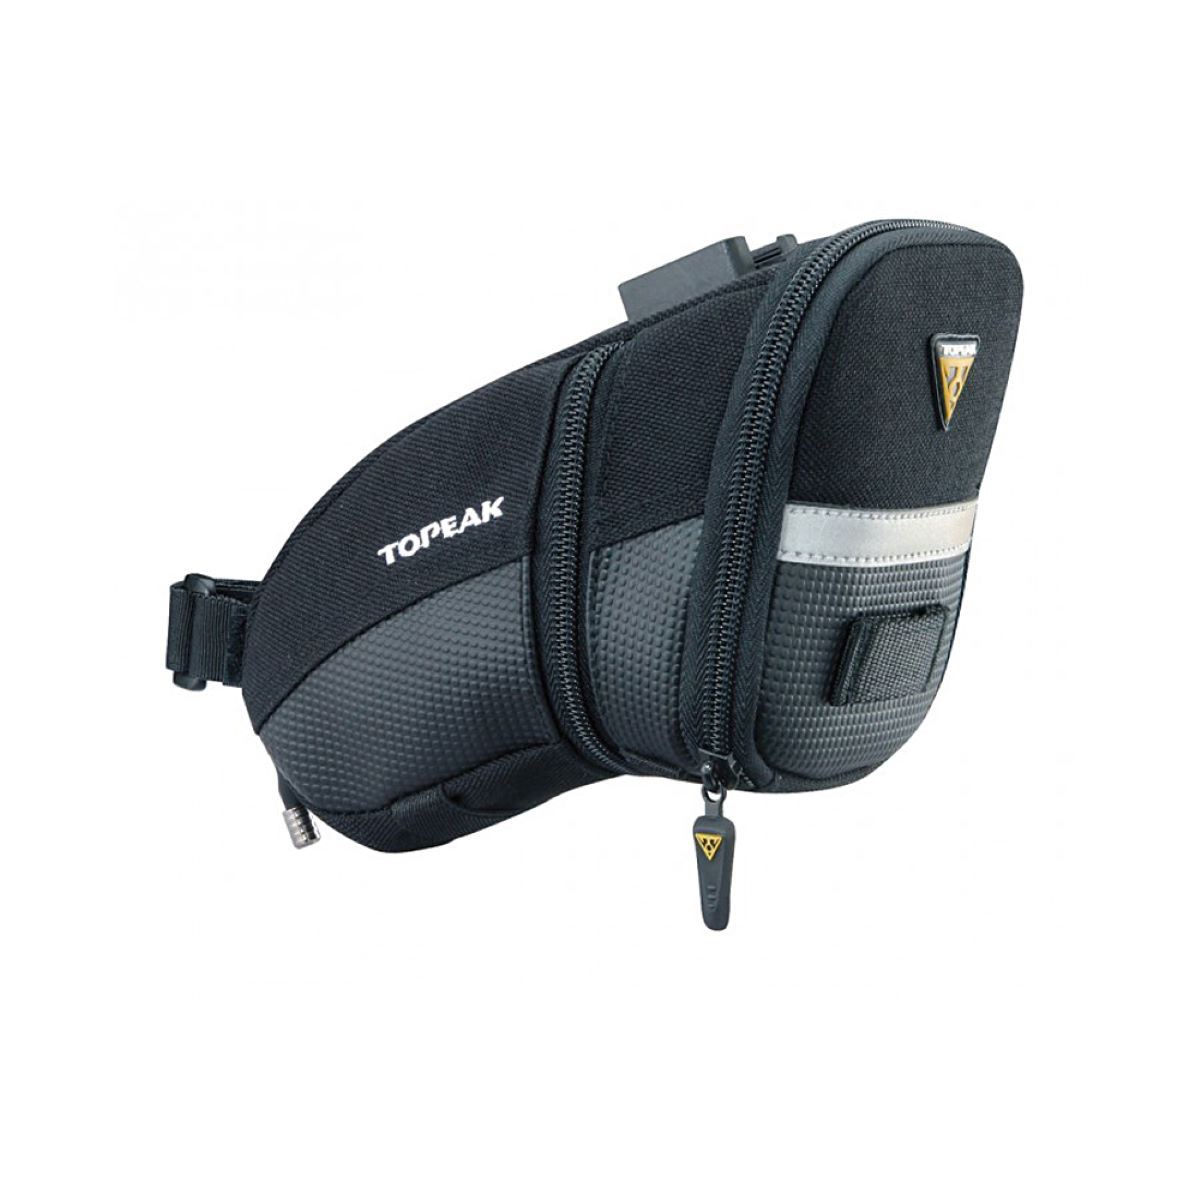 Sacoche de selle Topeak Aero Wedge (fixation clip-on, taille M) - M